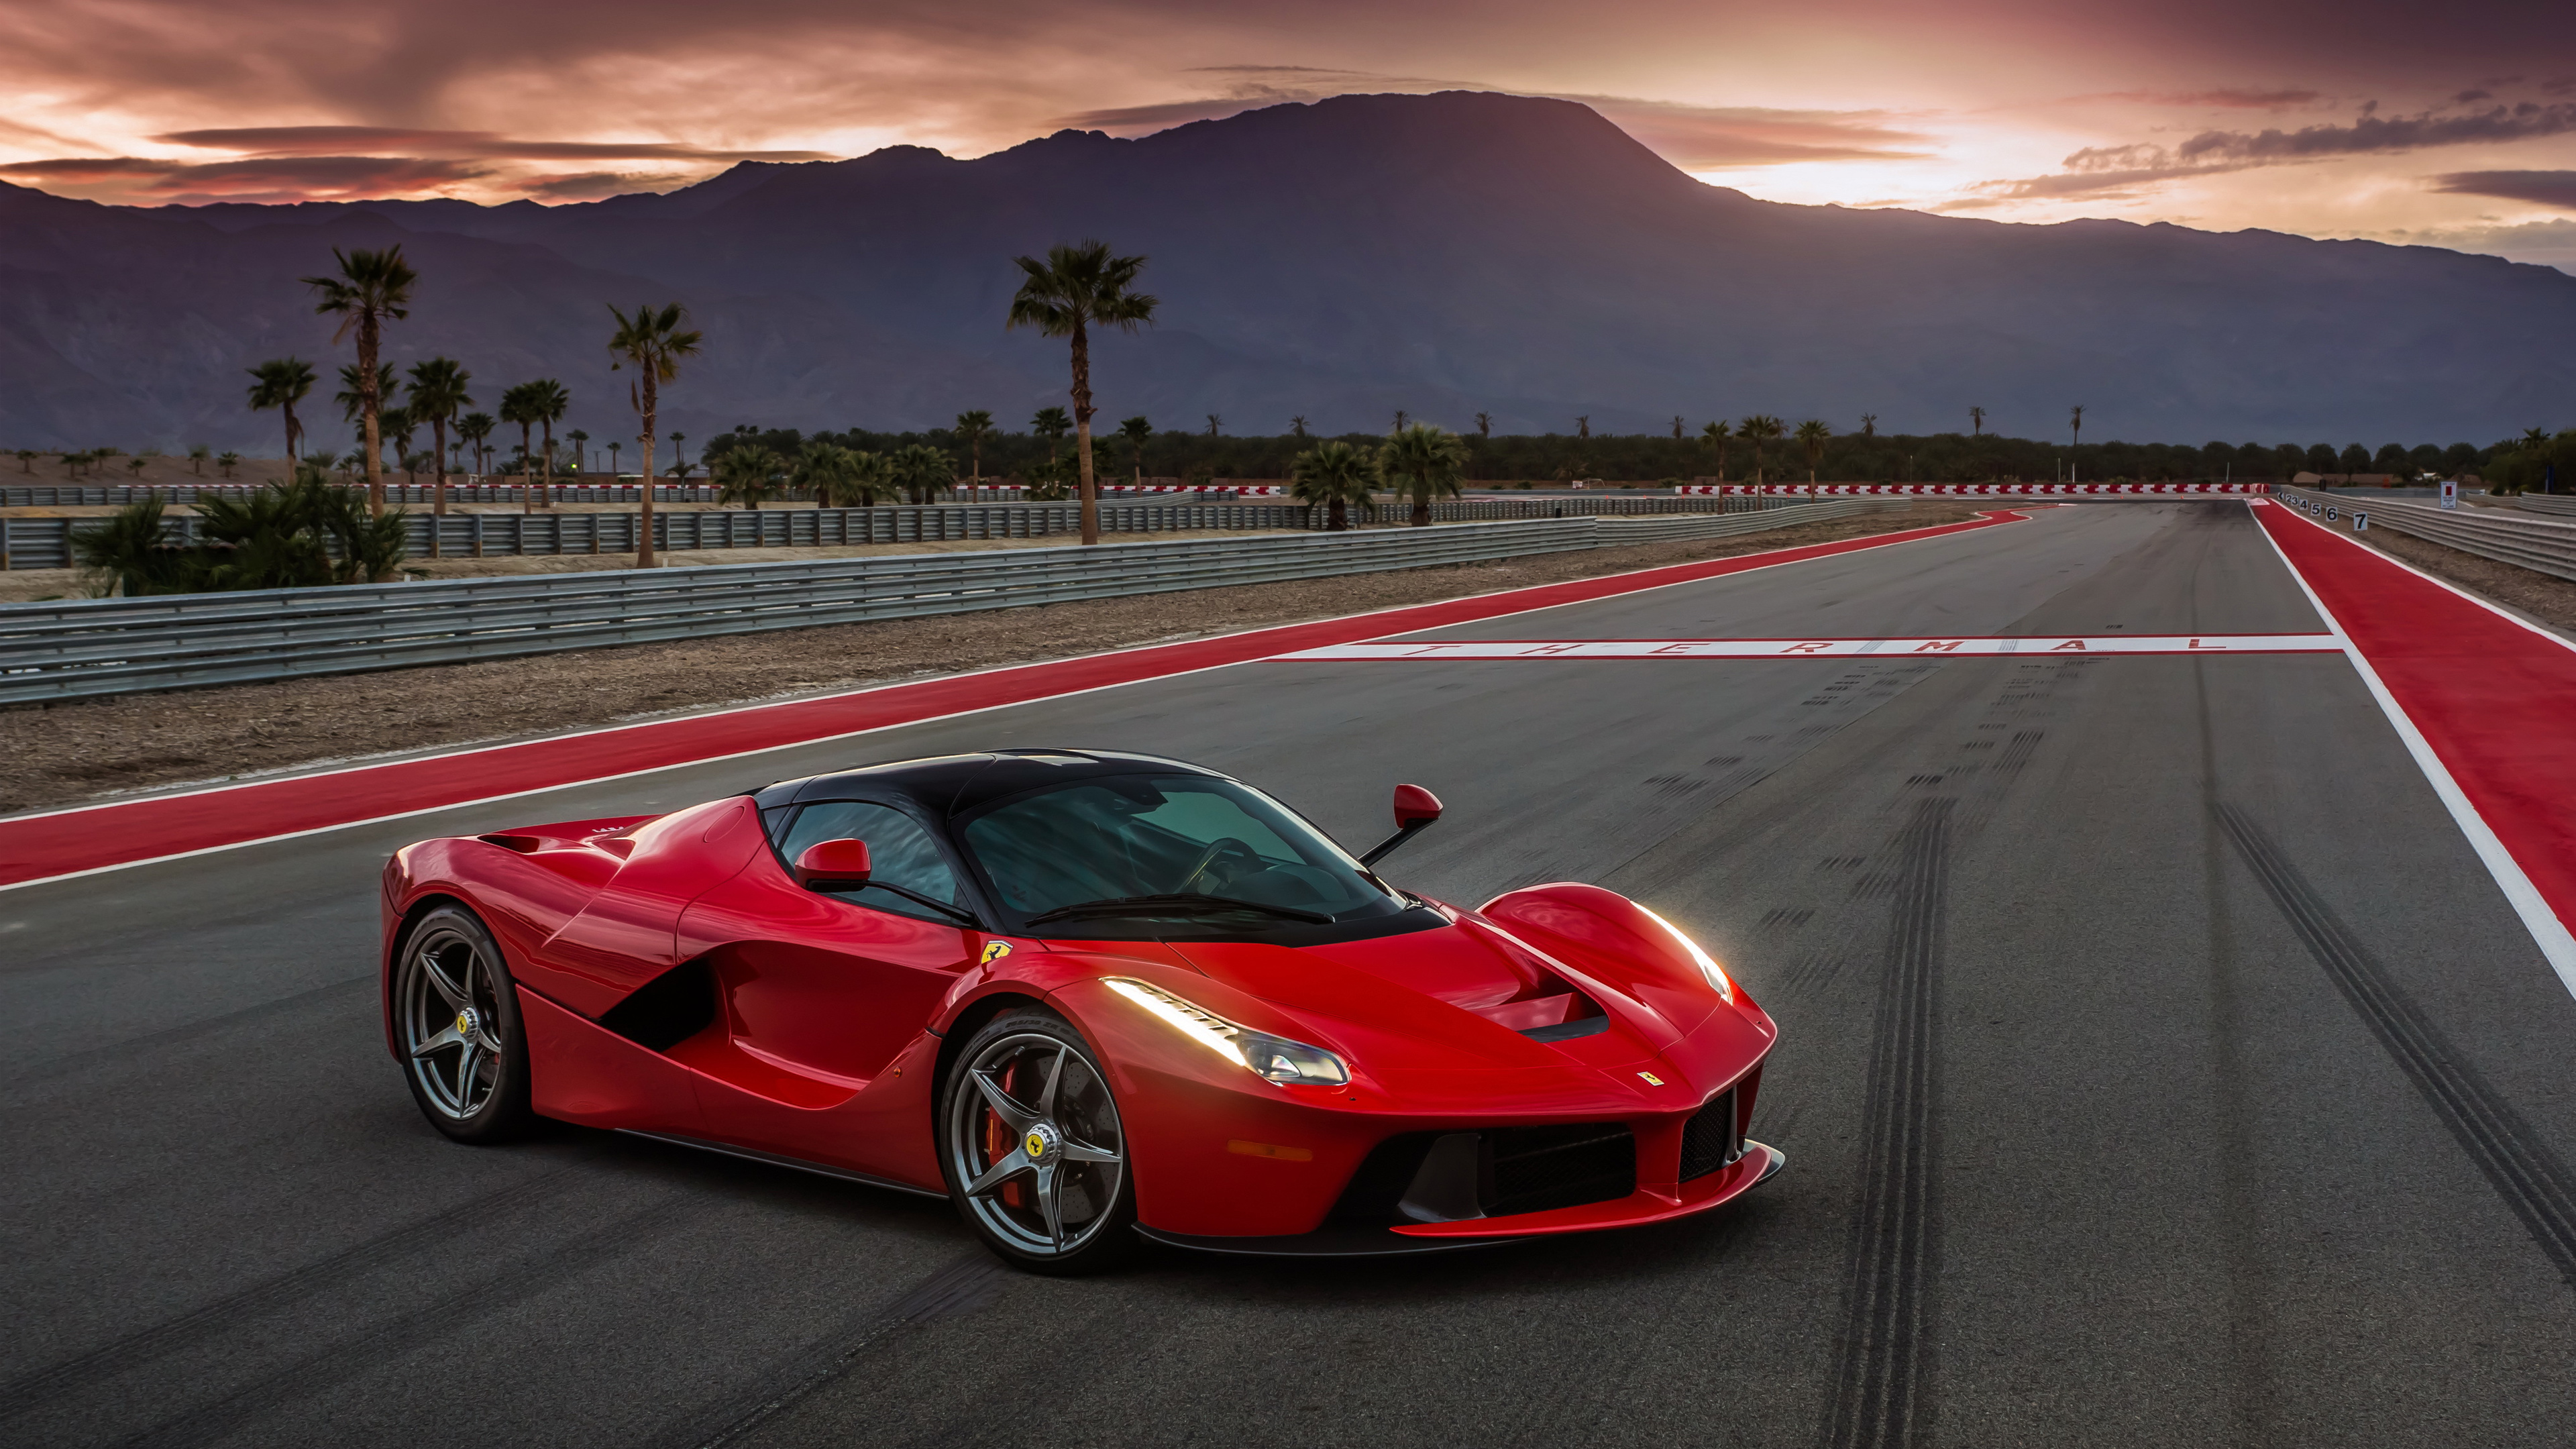 ferrari laferrari 4k wallpaper | hd car wallpapers | id #6928